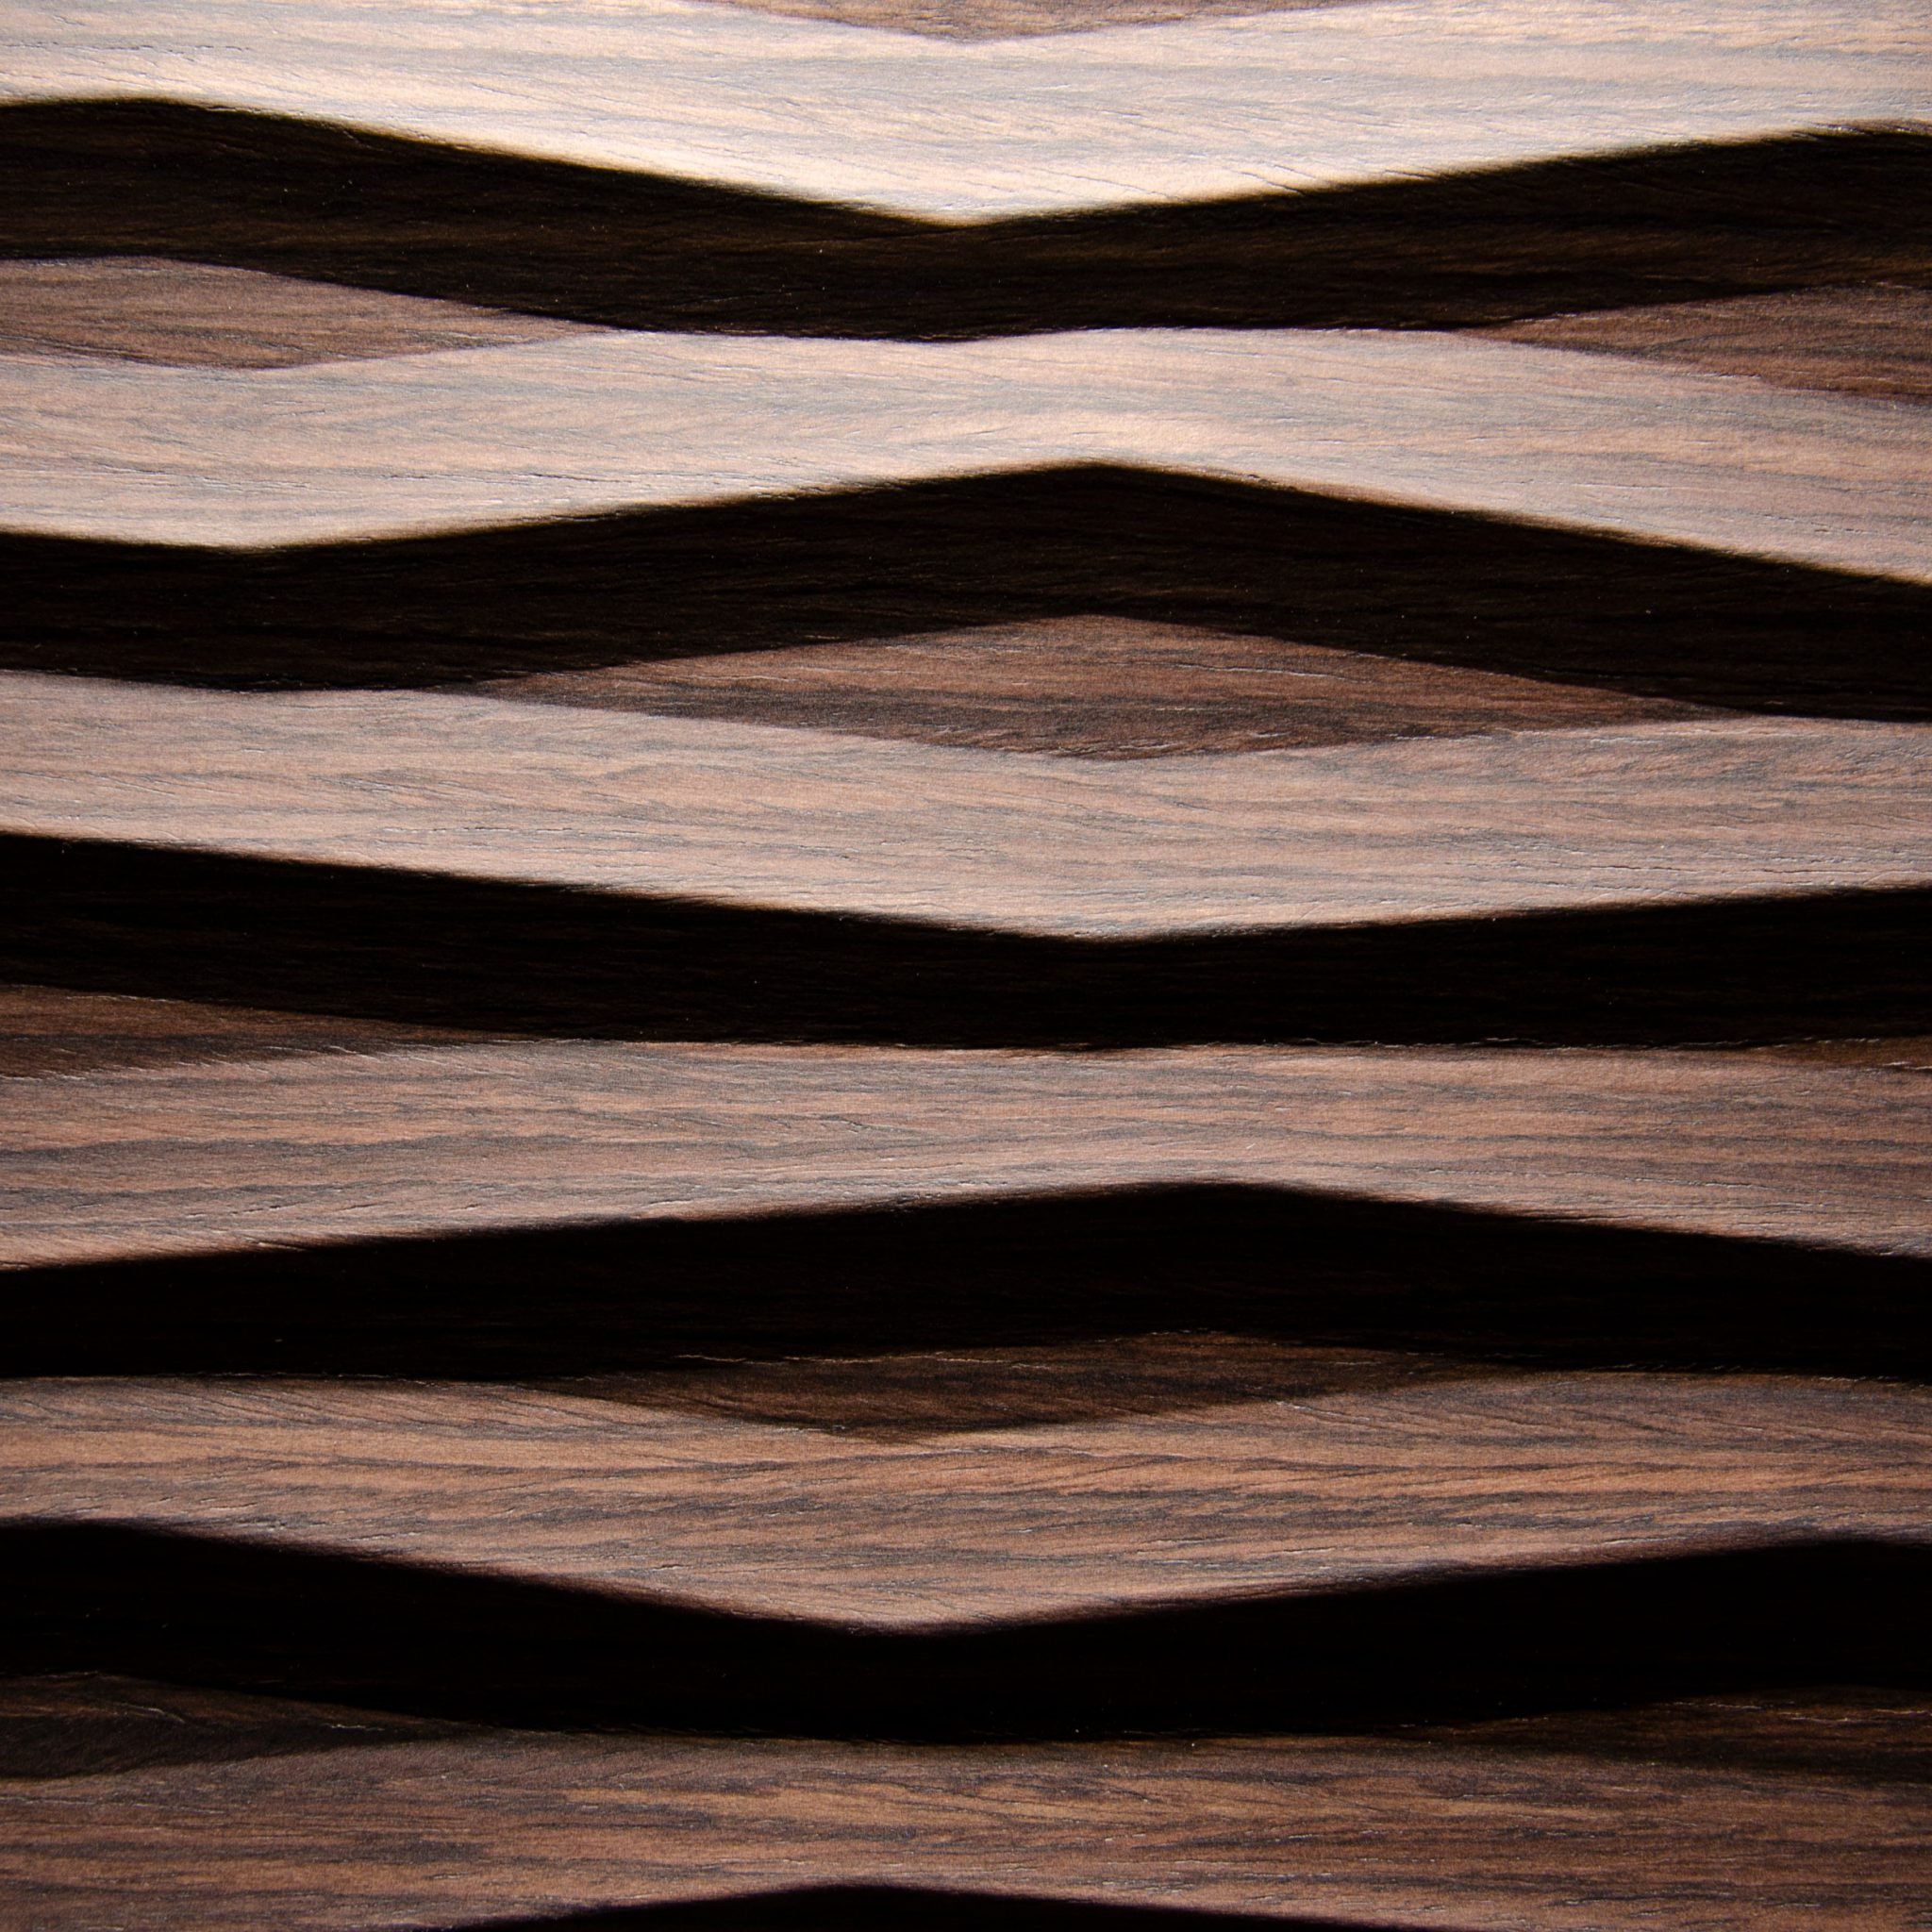 2369 - FLAME - Heartwood walnut - Real wood veneer